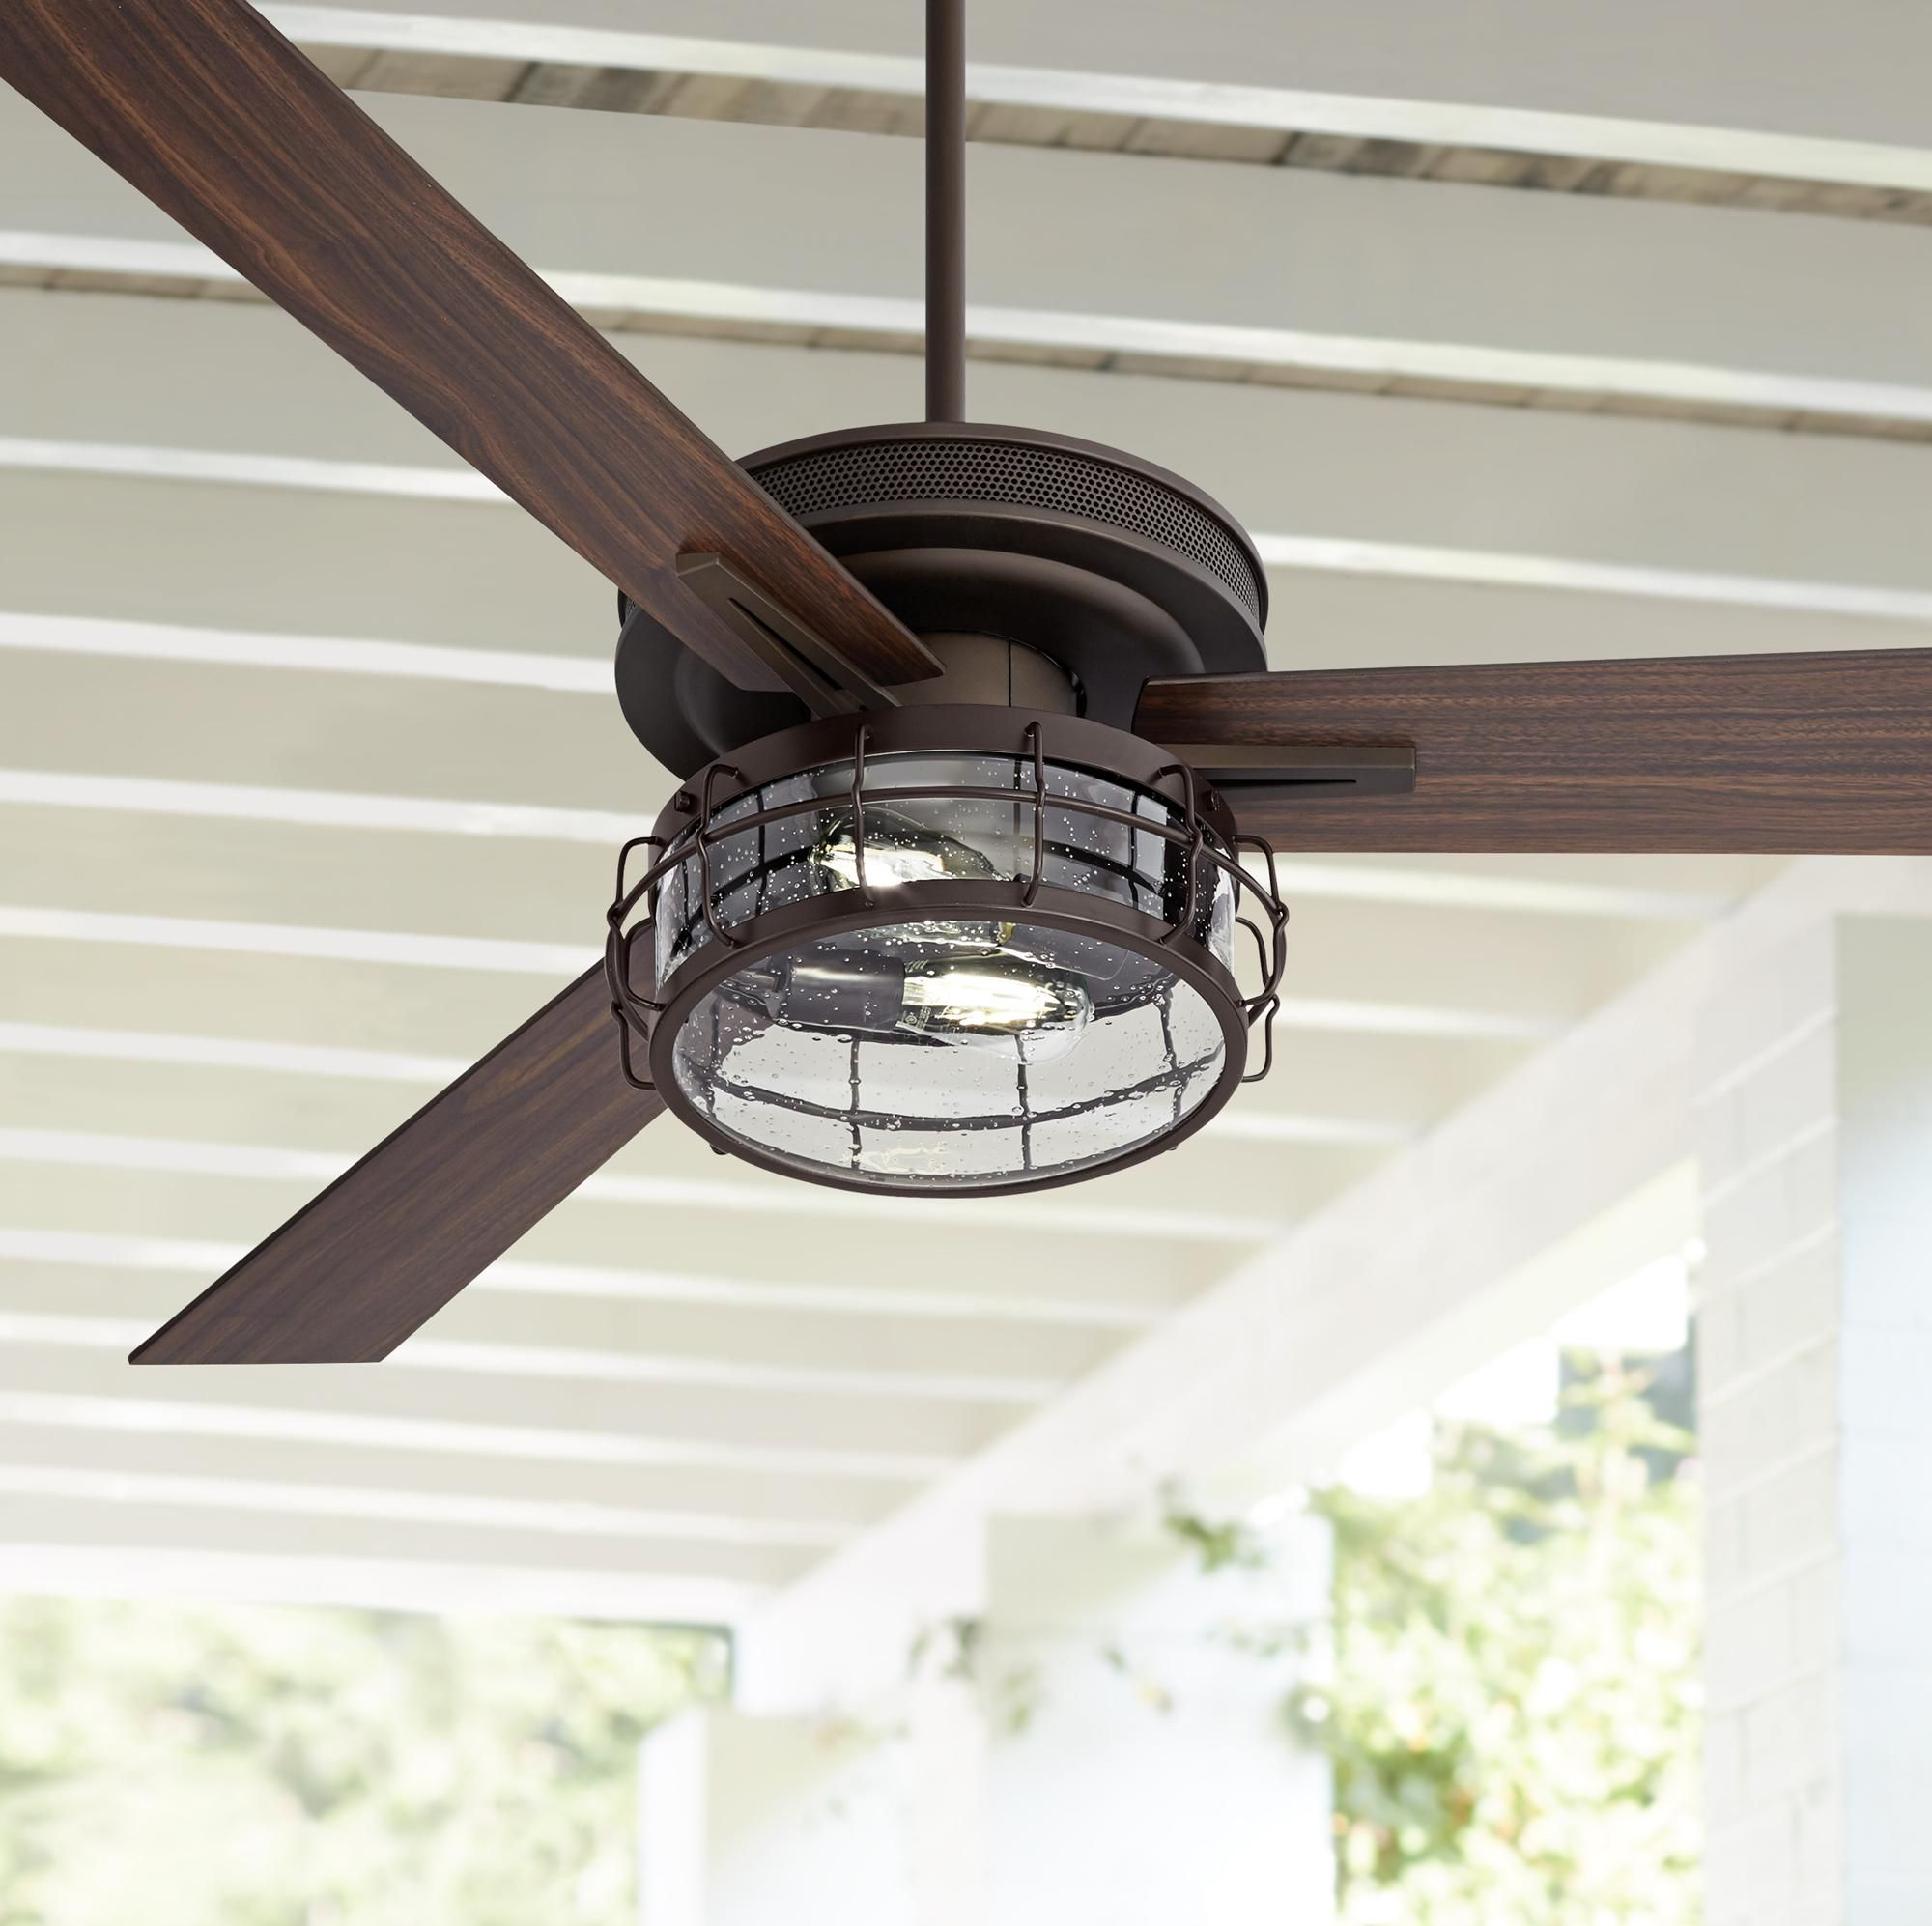 Ceiling Fans 60 Taladega Oil Rubbed Bronze Seedy Glass Led Ceiling Fan Led Ceiling Fan Ceiling Fan Ceiling Fan With Light